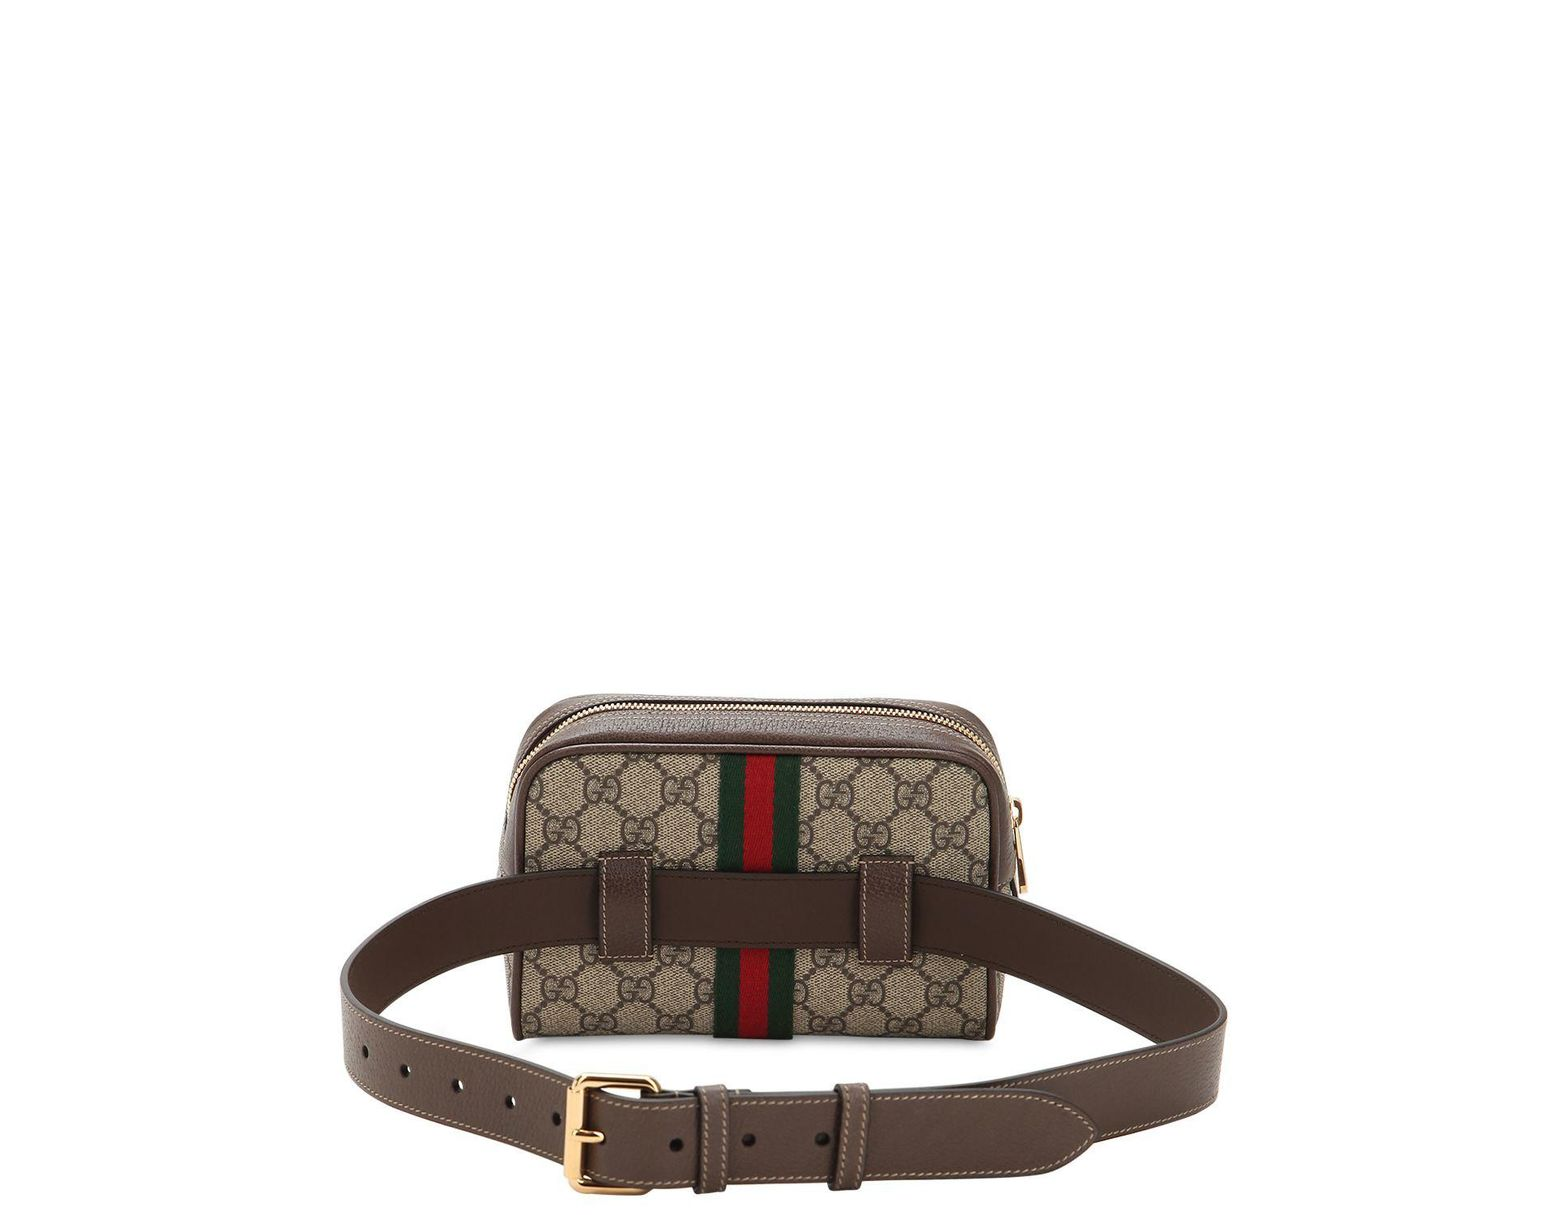 6a3f9862b502 Gucci Ophidia Gg Supreme Belt Bag in Brown - Save 17% - Lyst